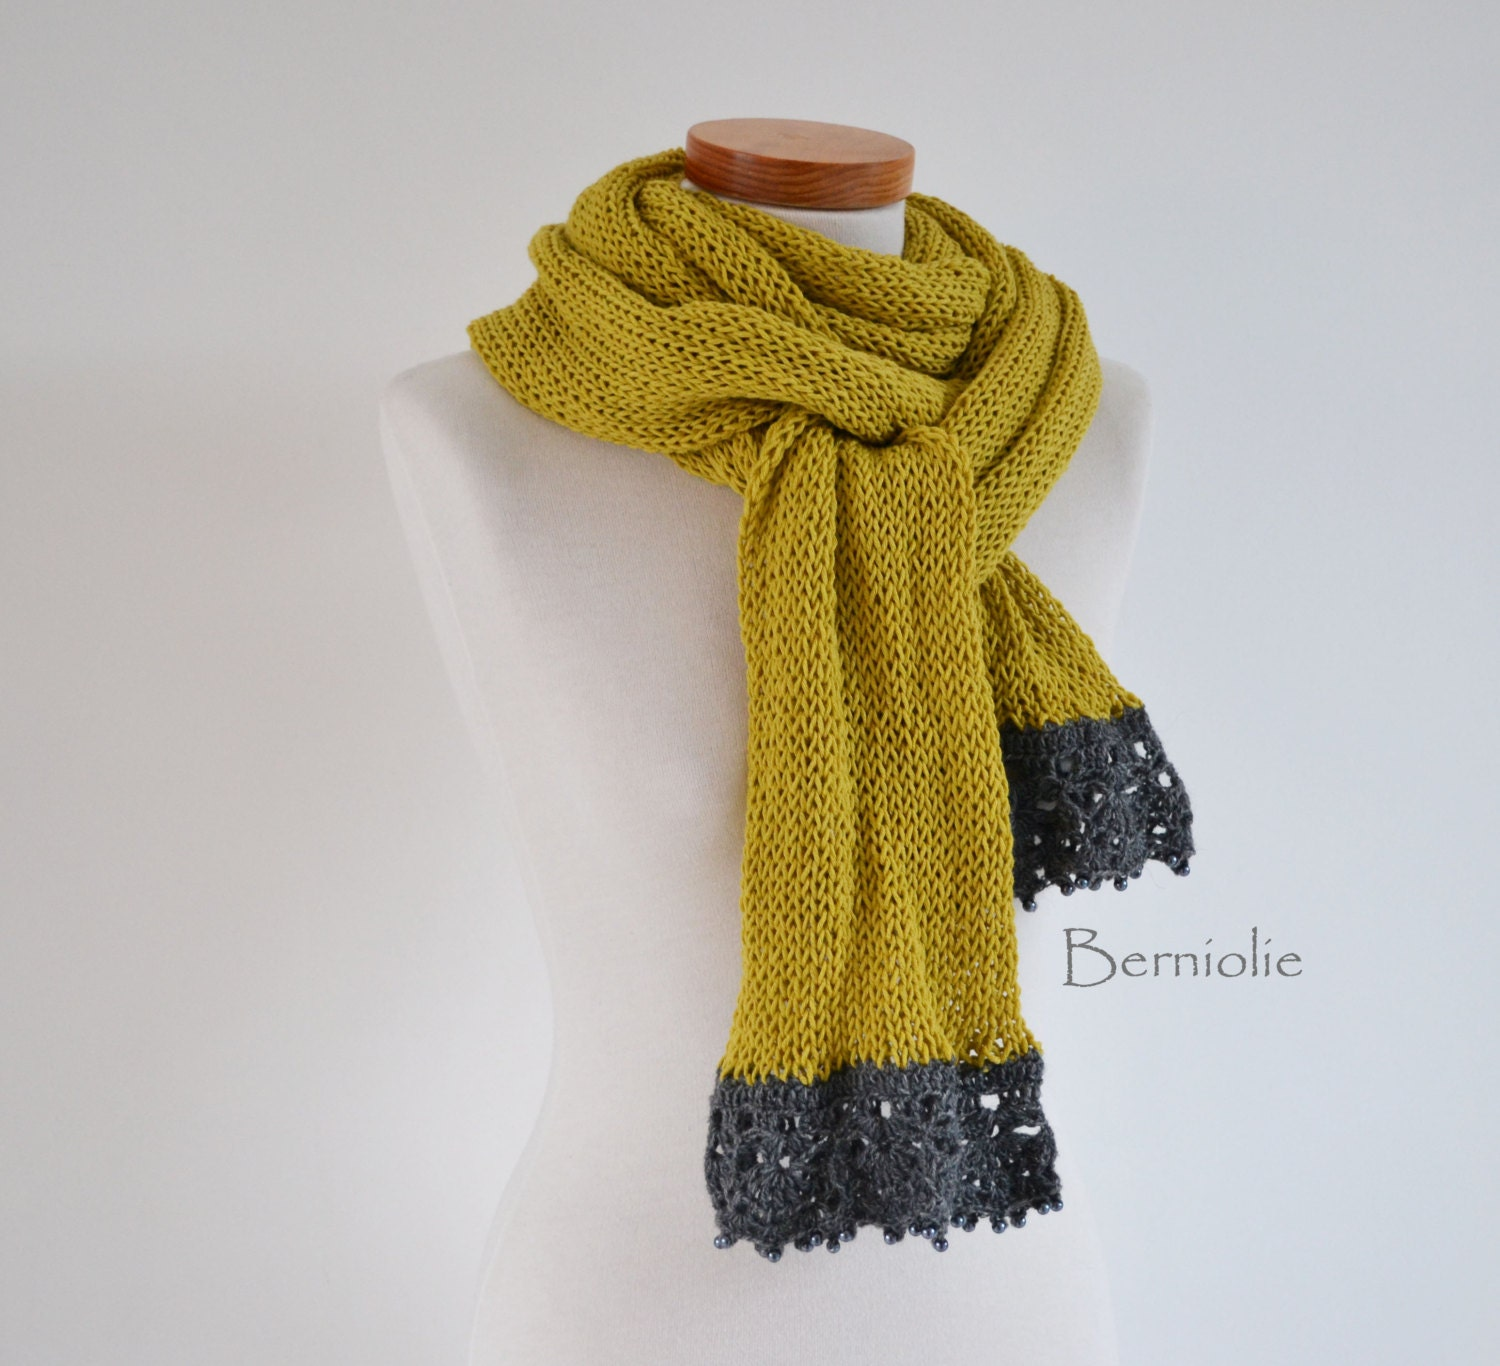 knitted scarf mustard yellow with grey lace trim and by